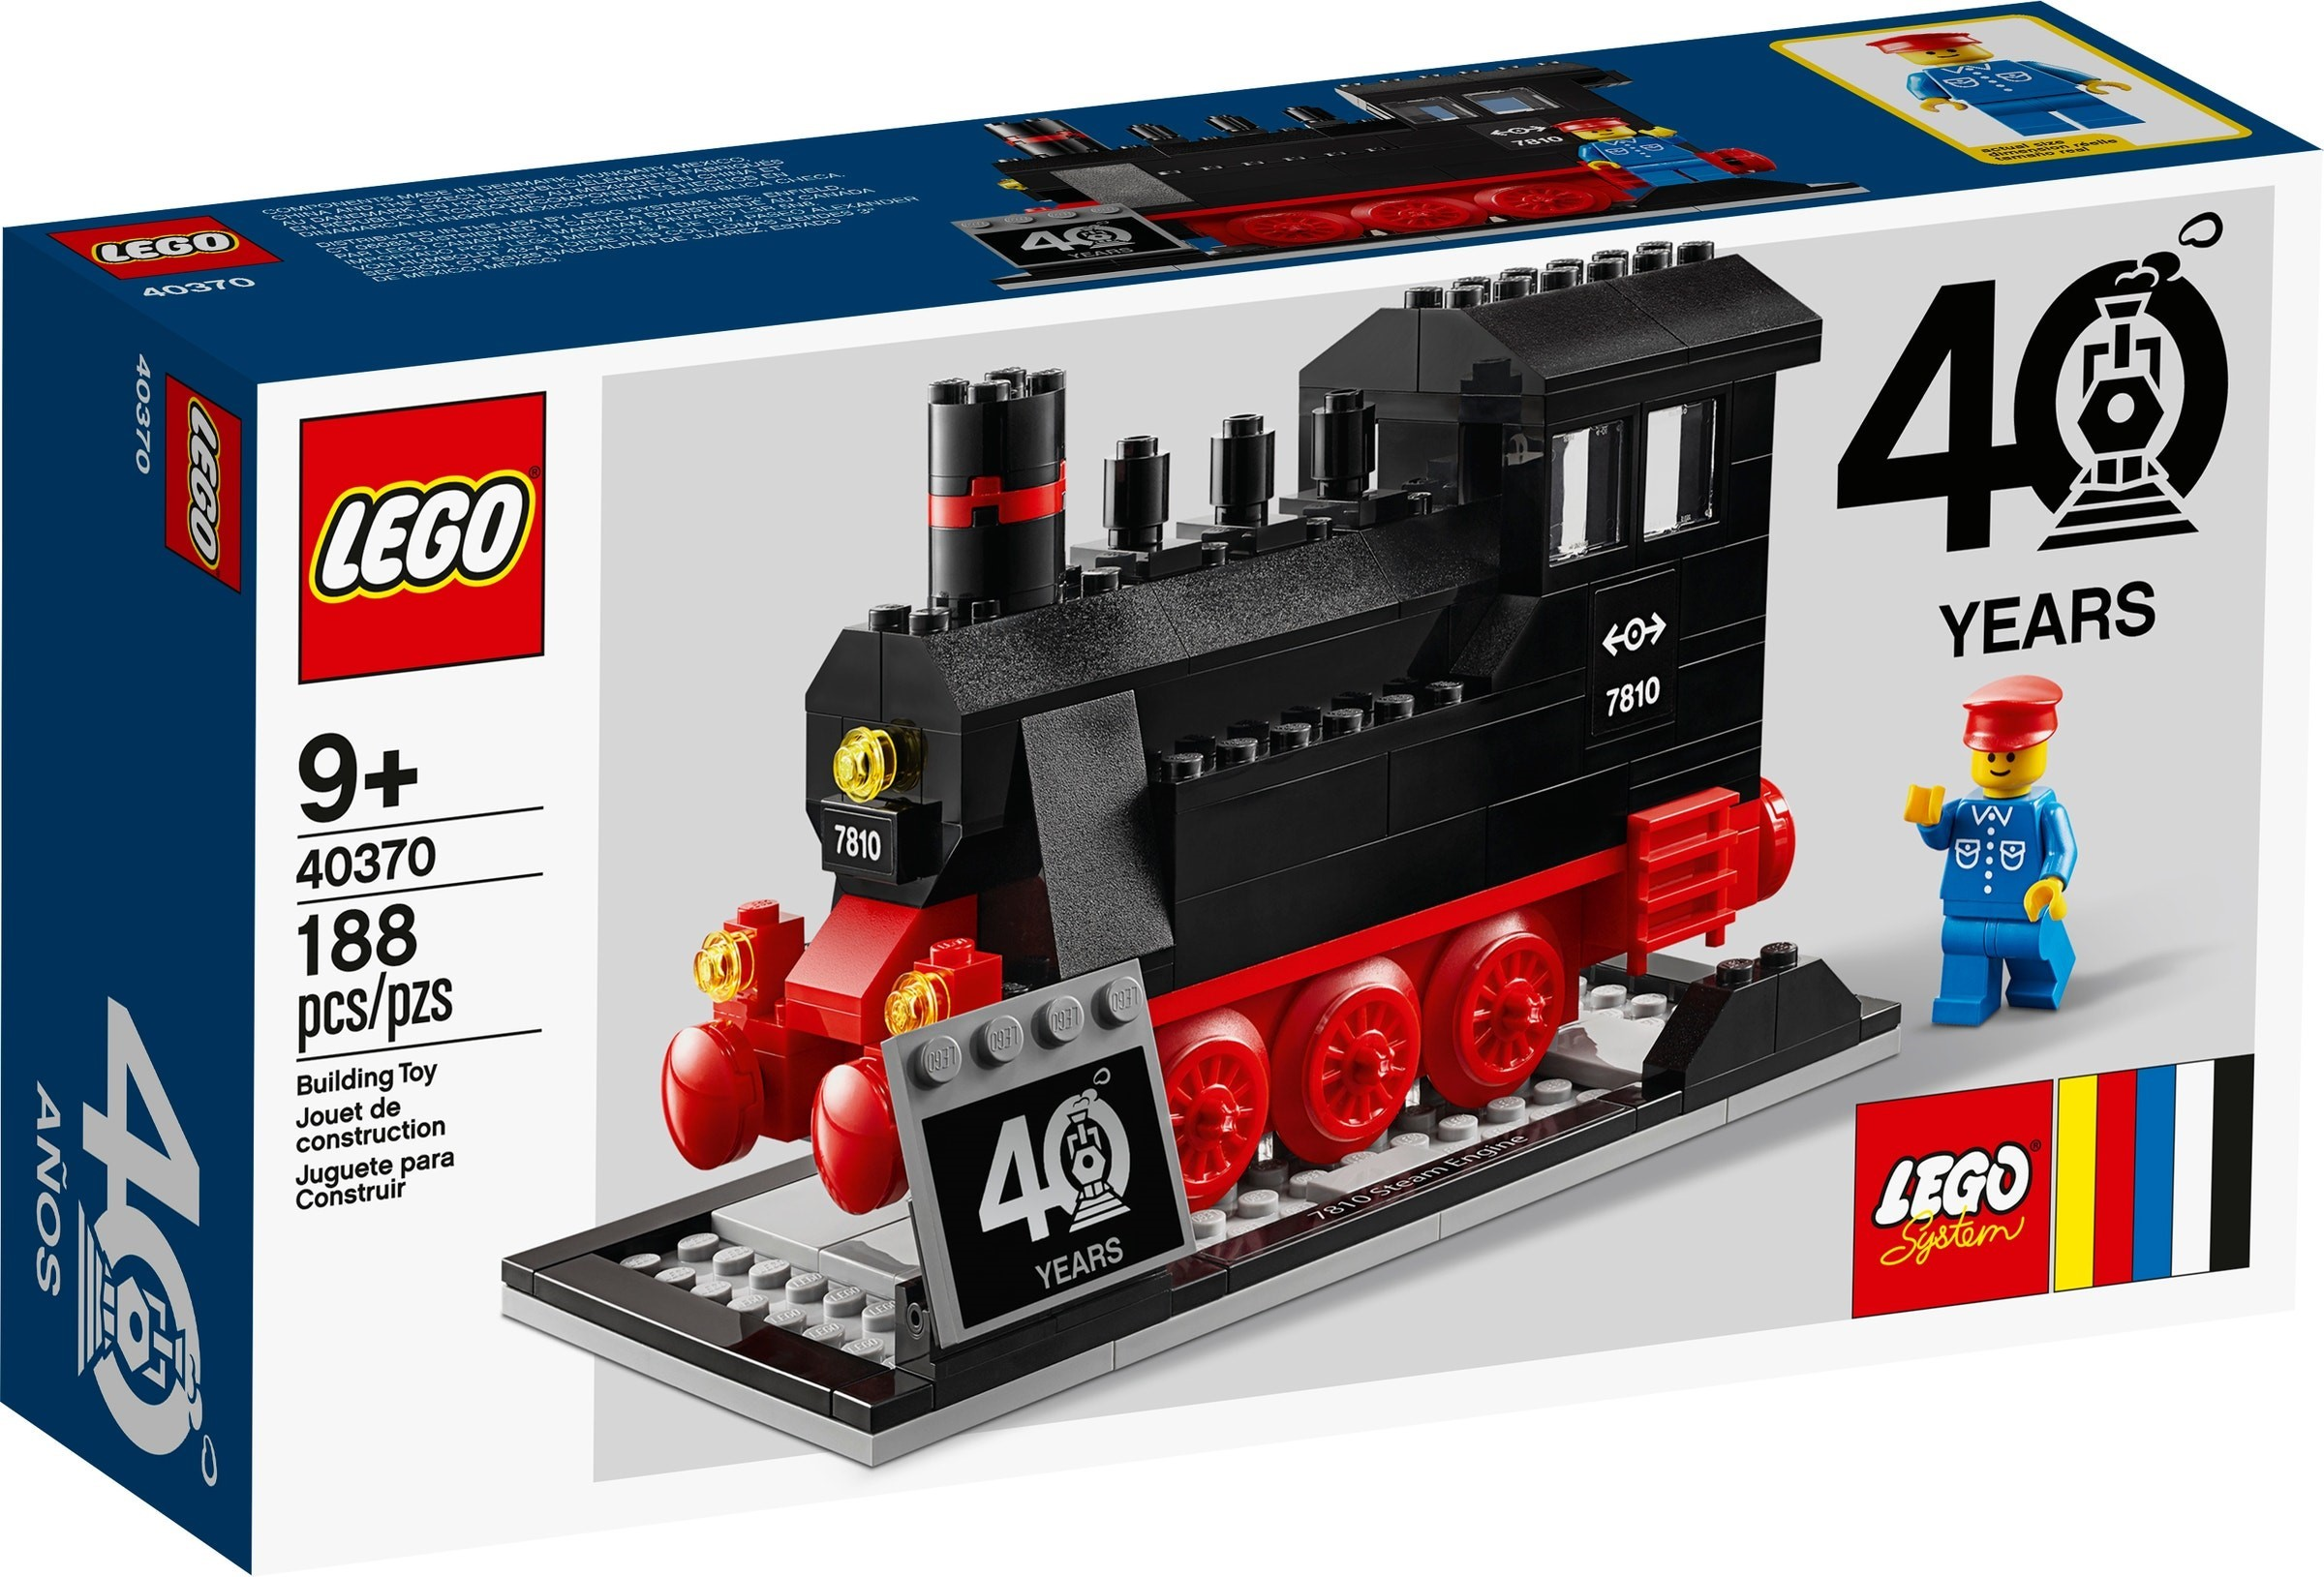 40370 LEGO Trains 40th Anniversary Set